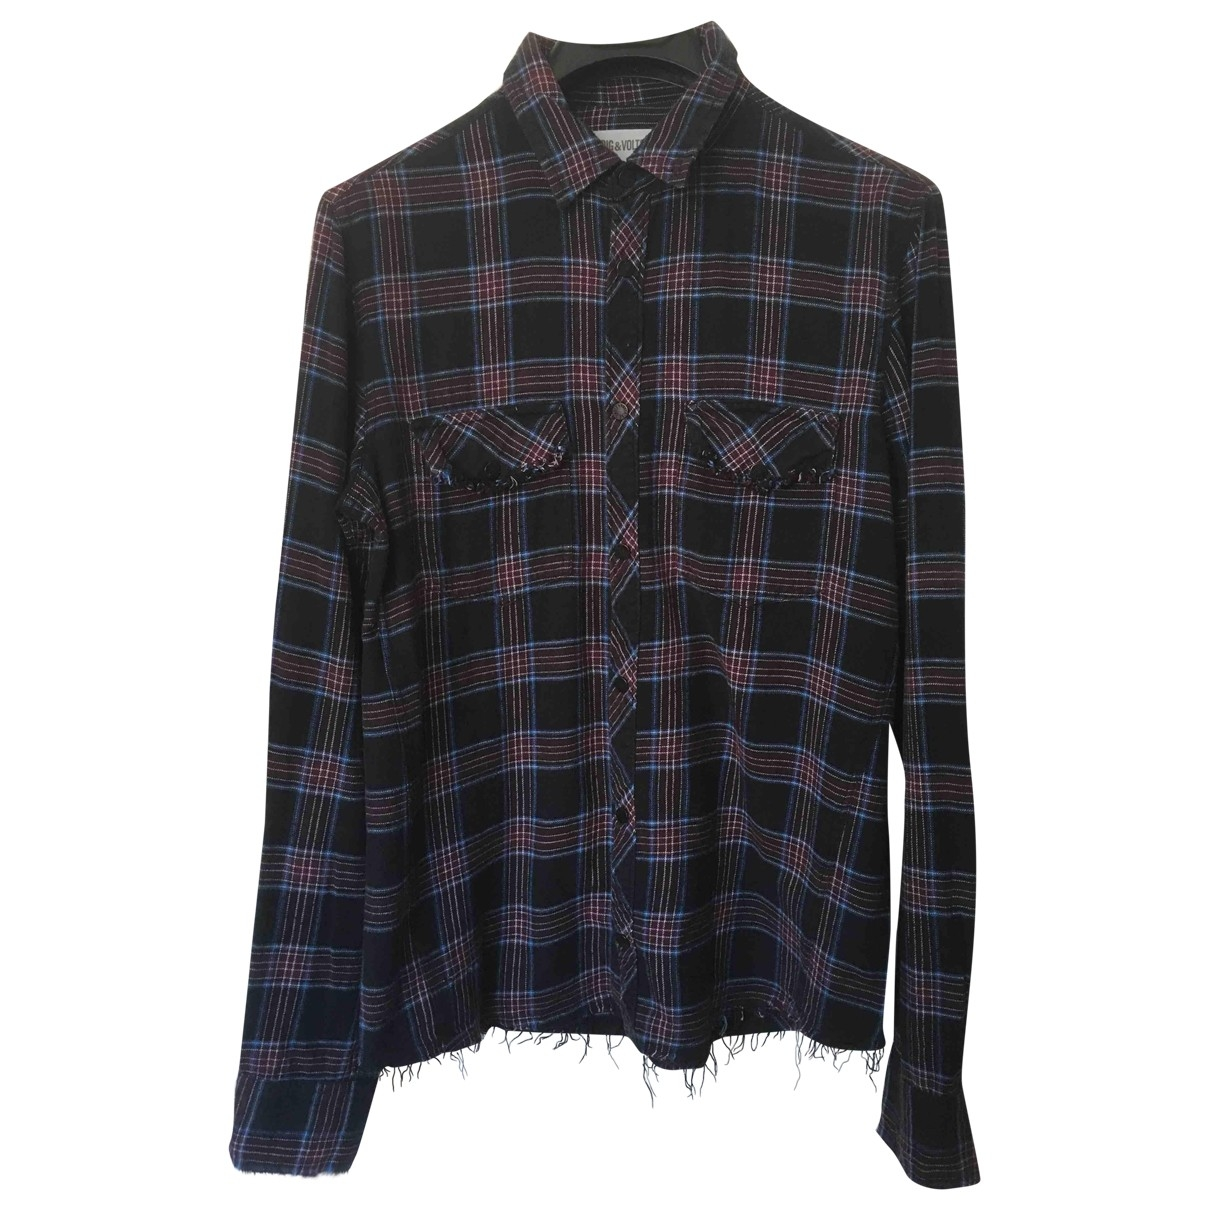 Zadig & Voltaire \N Multicolour Cotton Shirts for Men M International